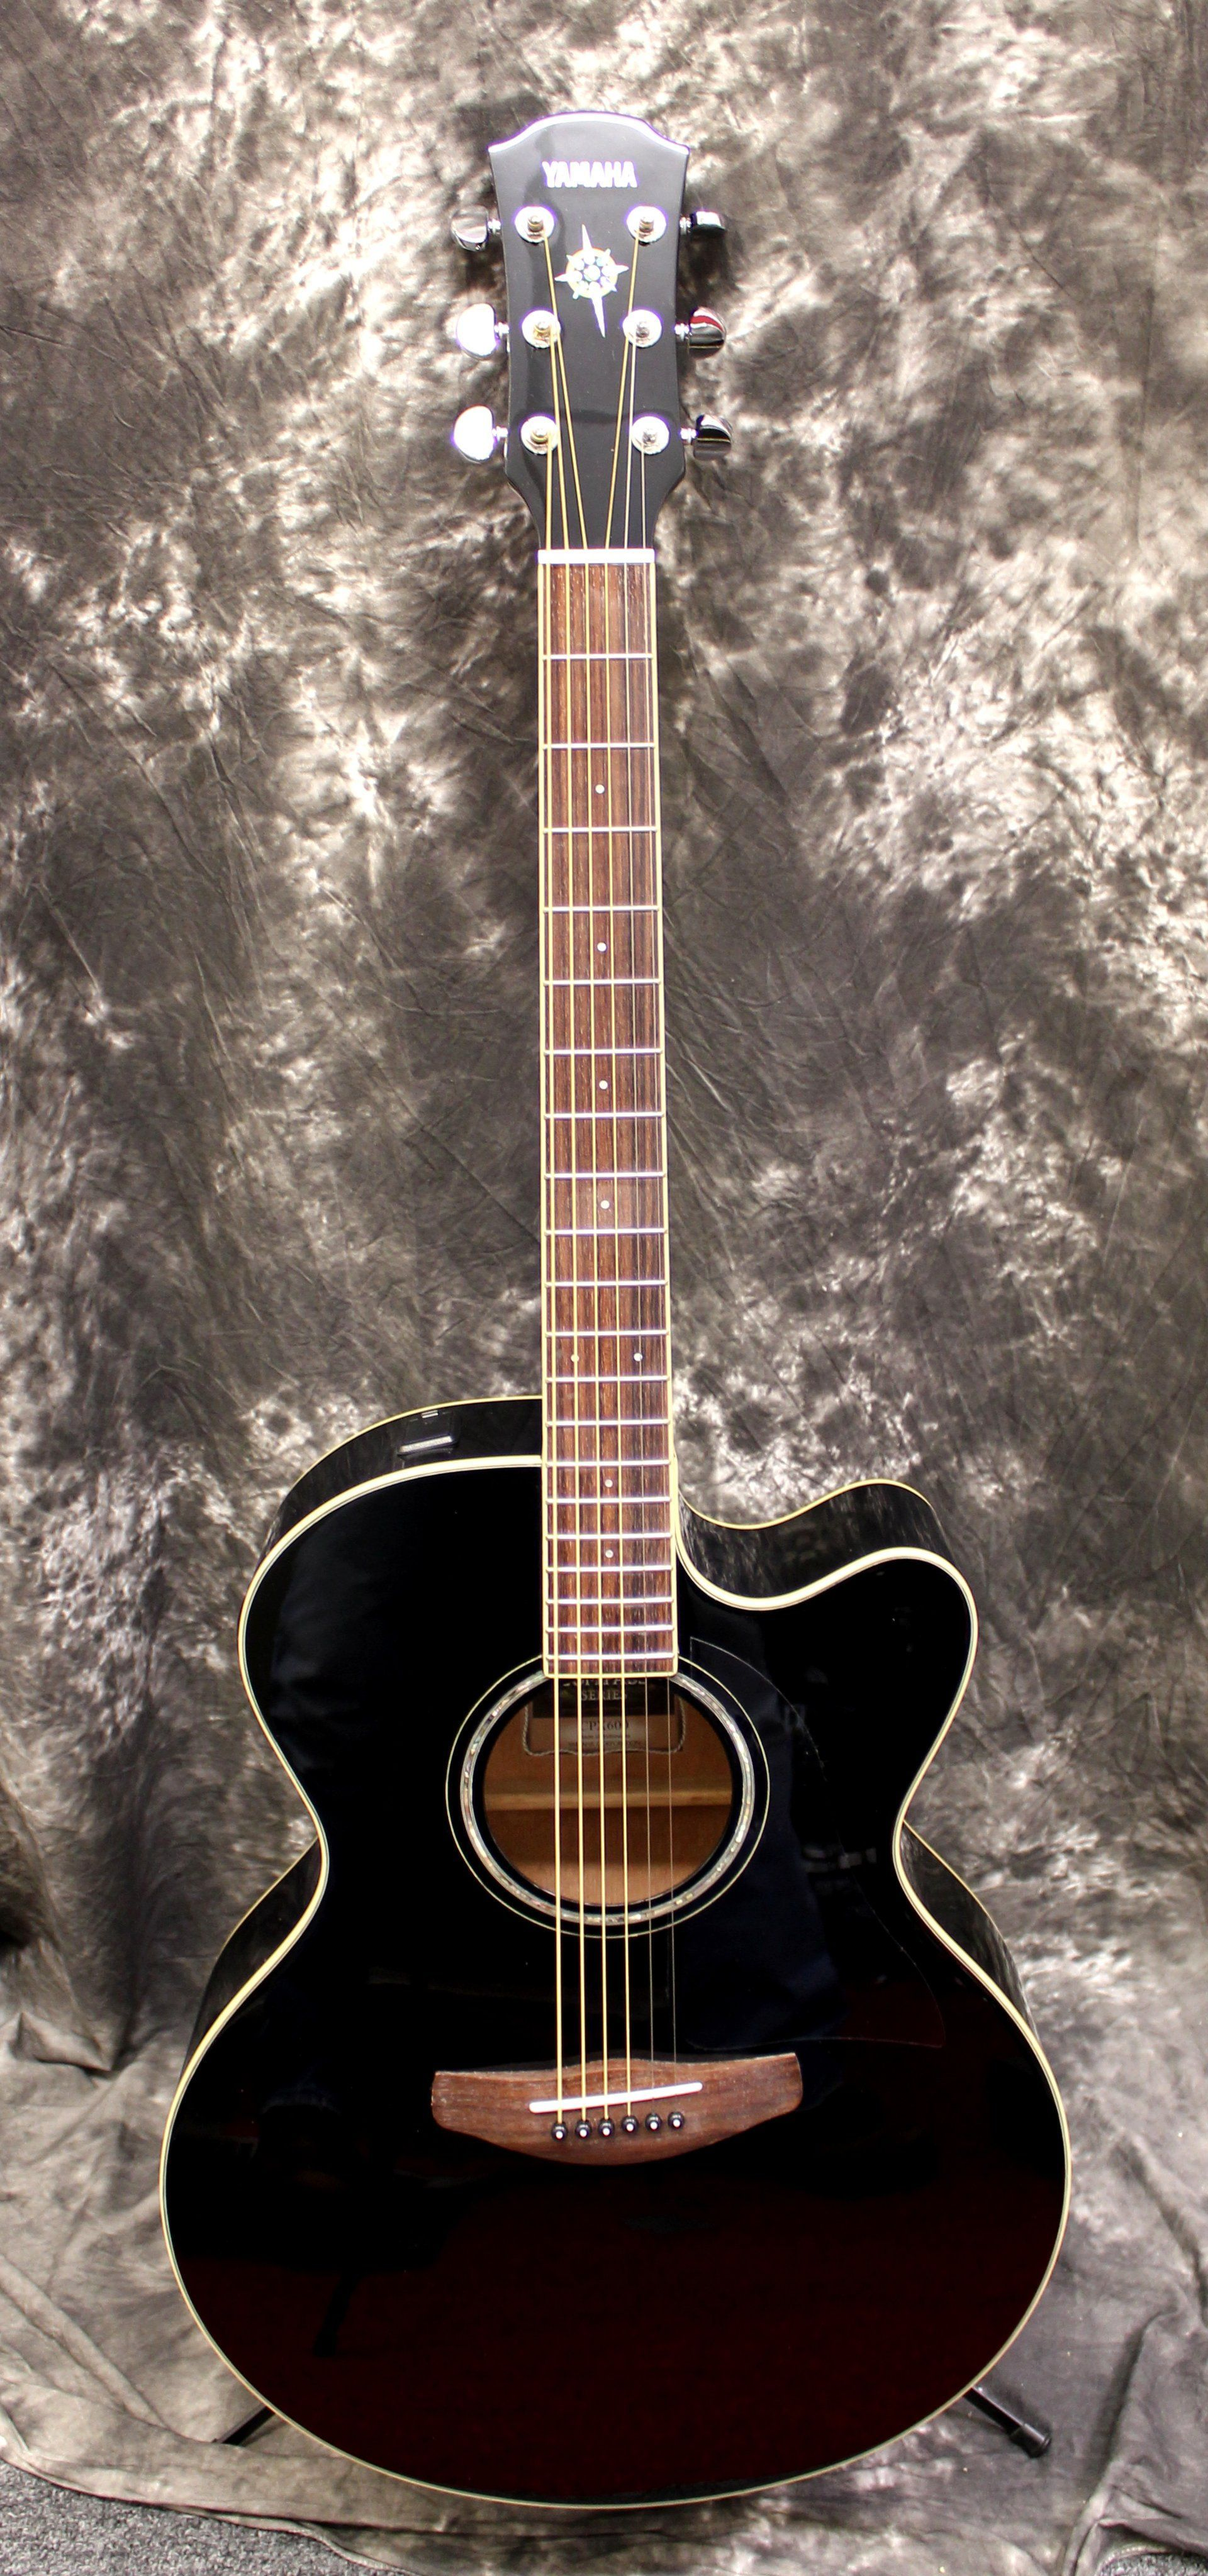 Yamaha Cpx 600 Black Acoustic Electric Guitar Acoustic Electric Guitar Guitar Acoustic Electric